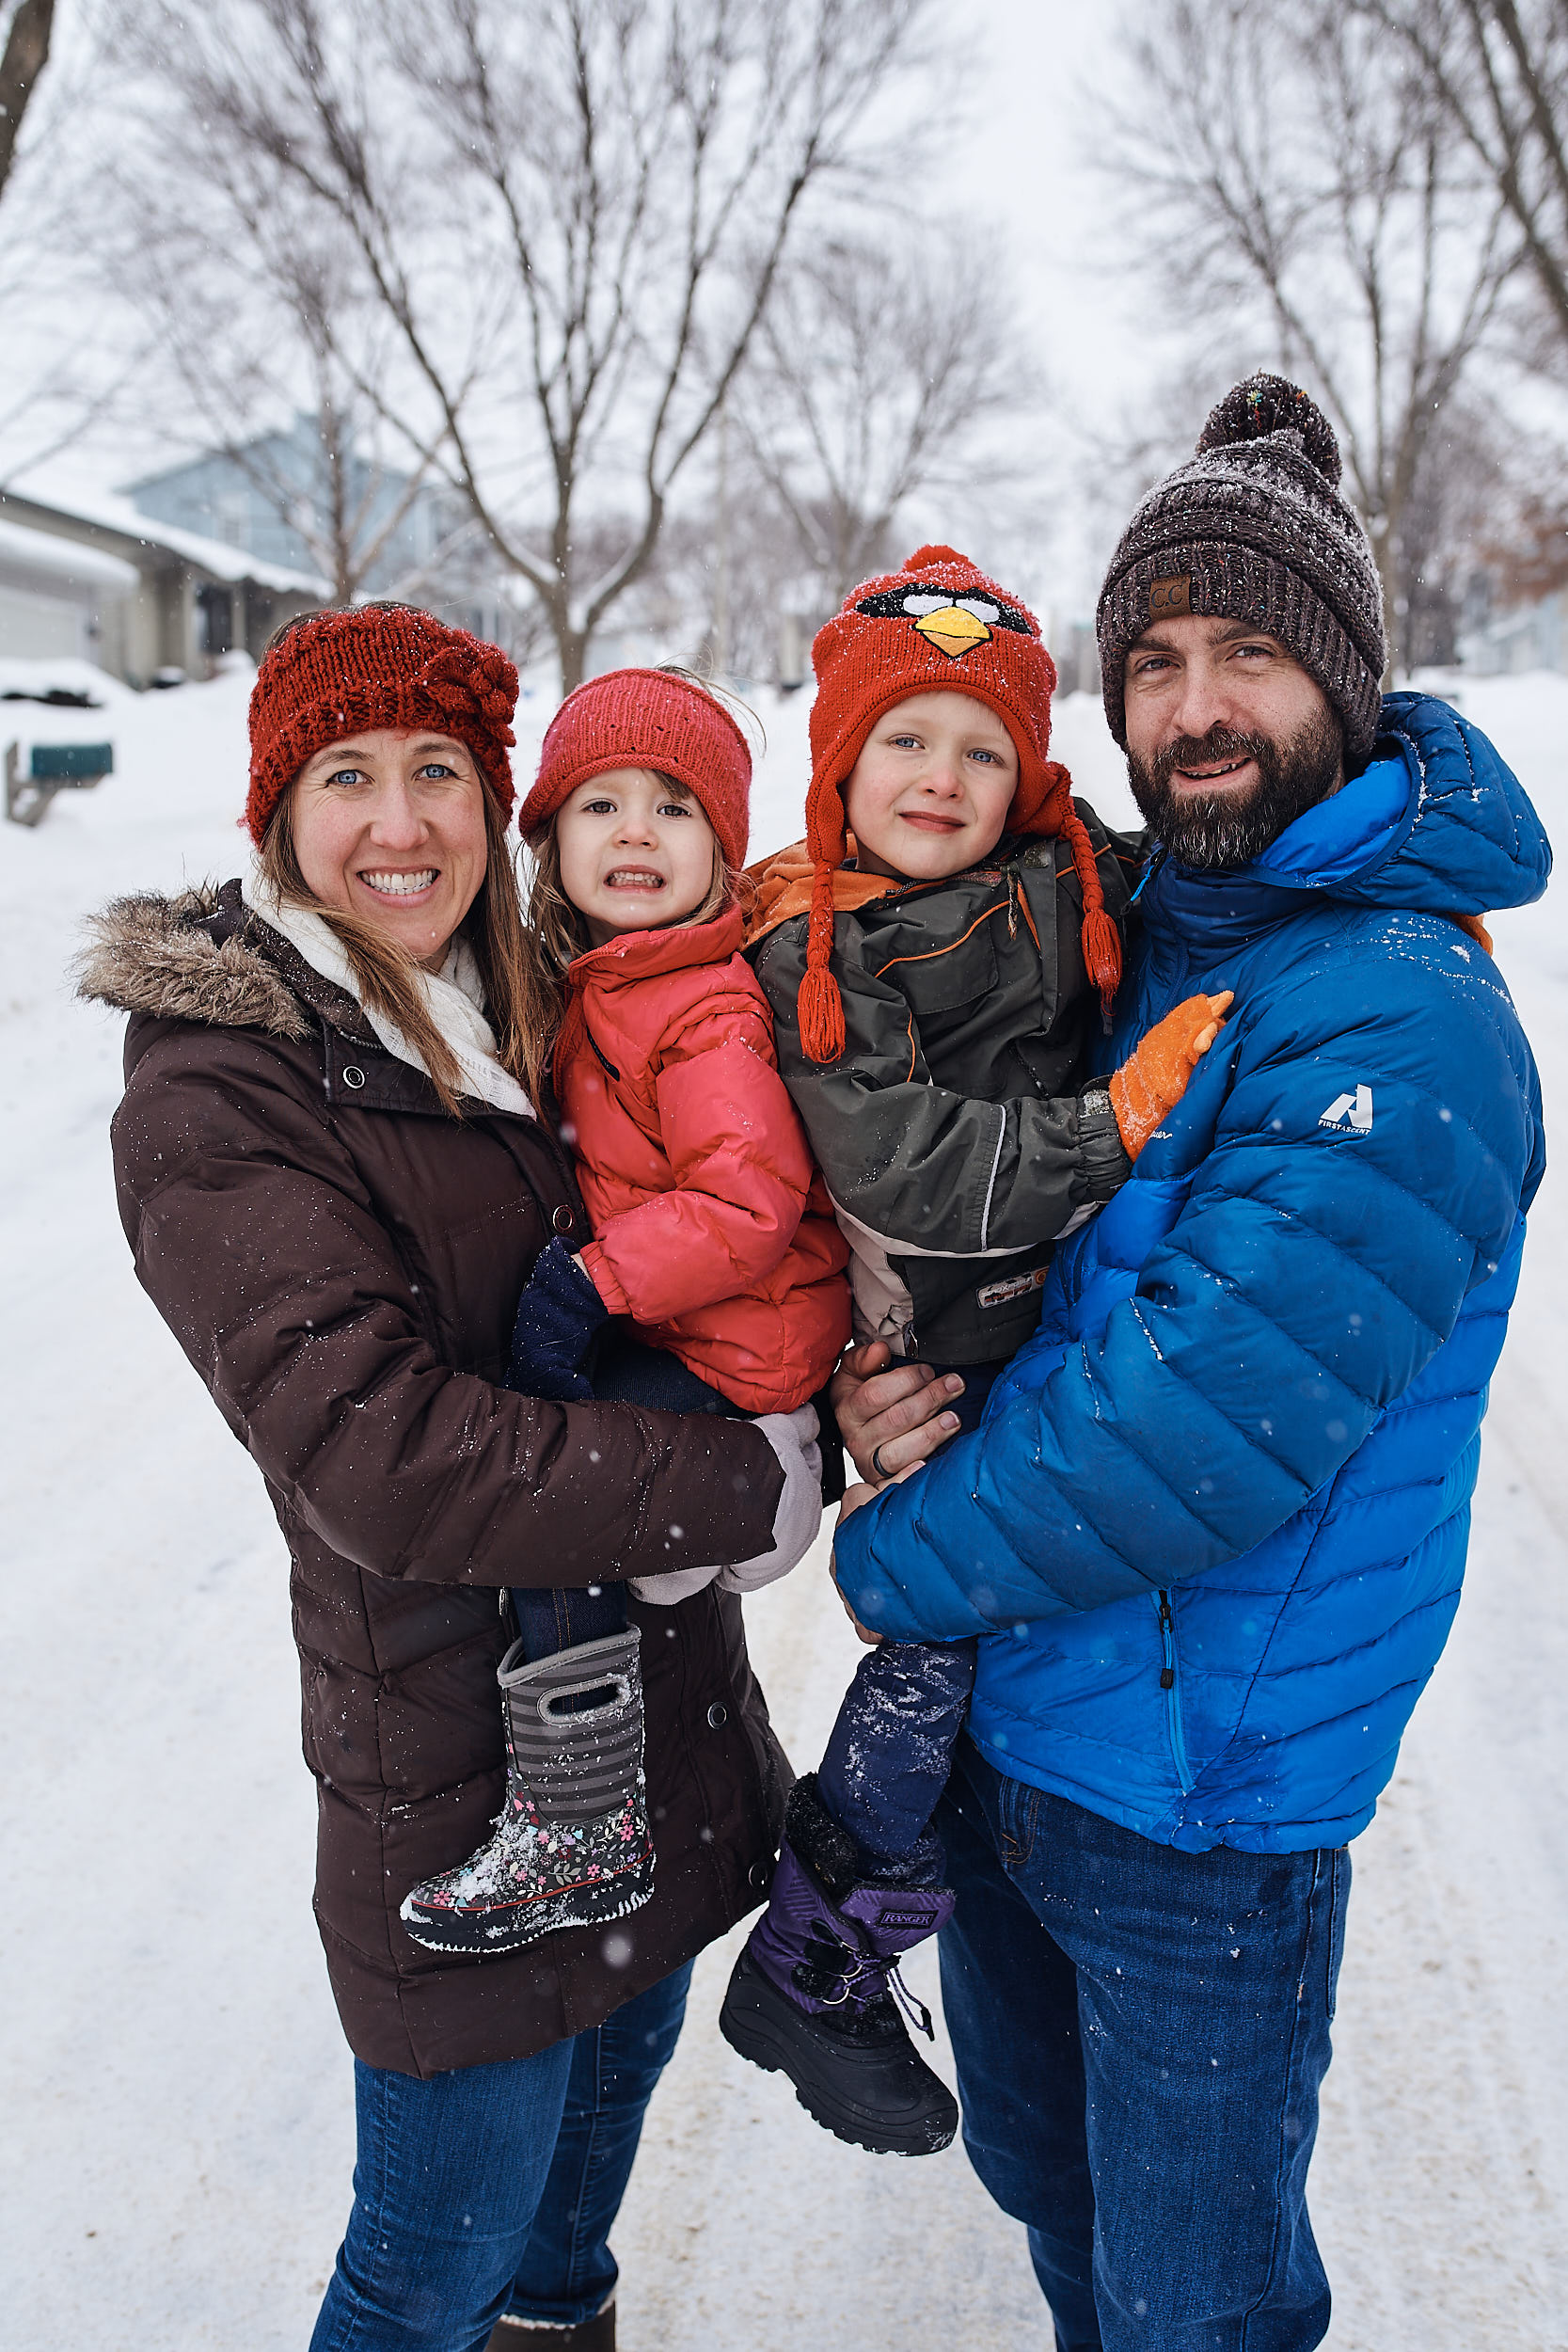 Snowy Family Portrait Photoshoot | Photo by BillyBengtson.com